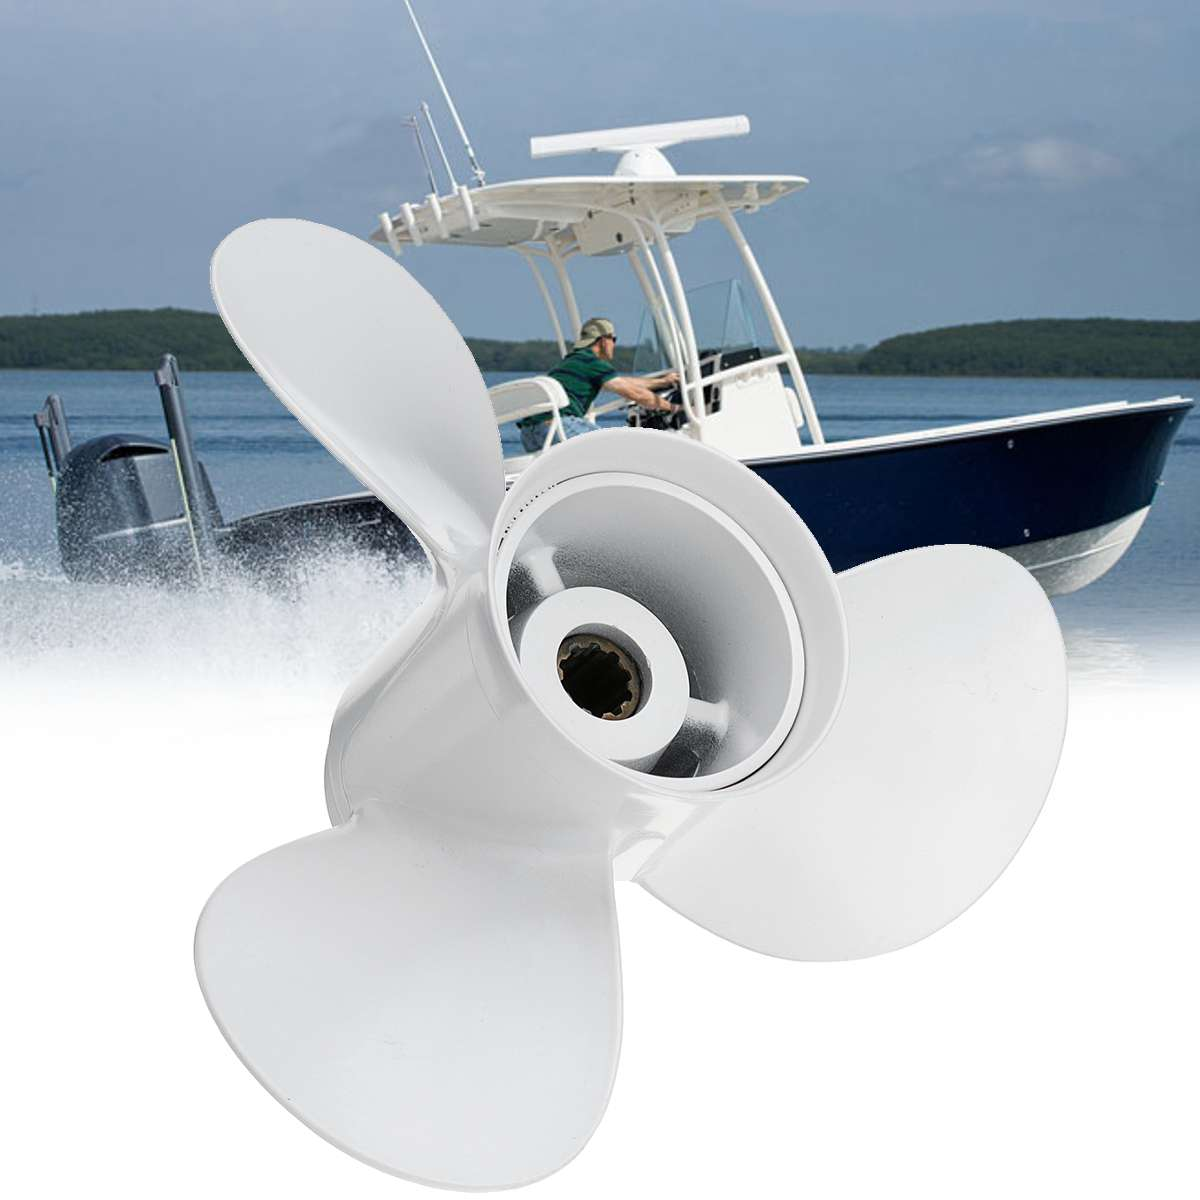 664-45952-00-EL 9 7/8 X 14 Aluminum Boat Outboard Propeller For Yamaha 20-30HP White 10 Spline Tooth 3 Blades R Rotation